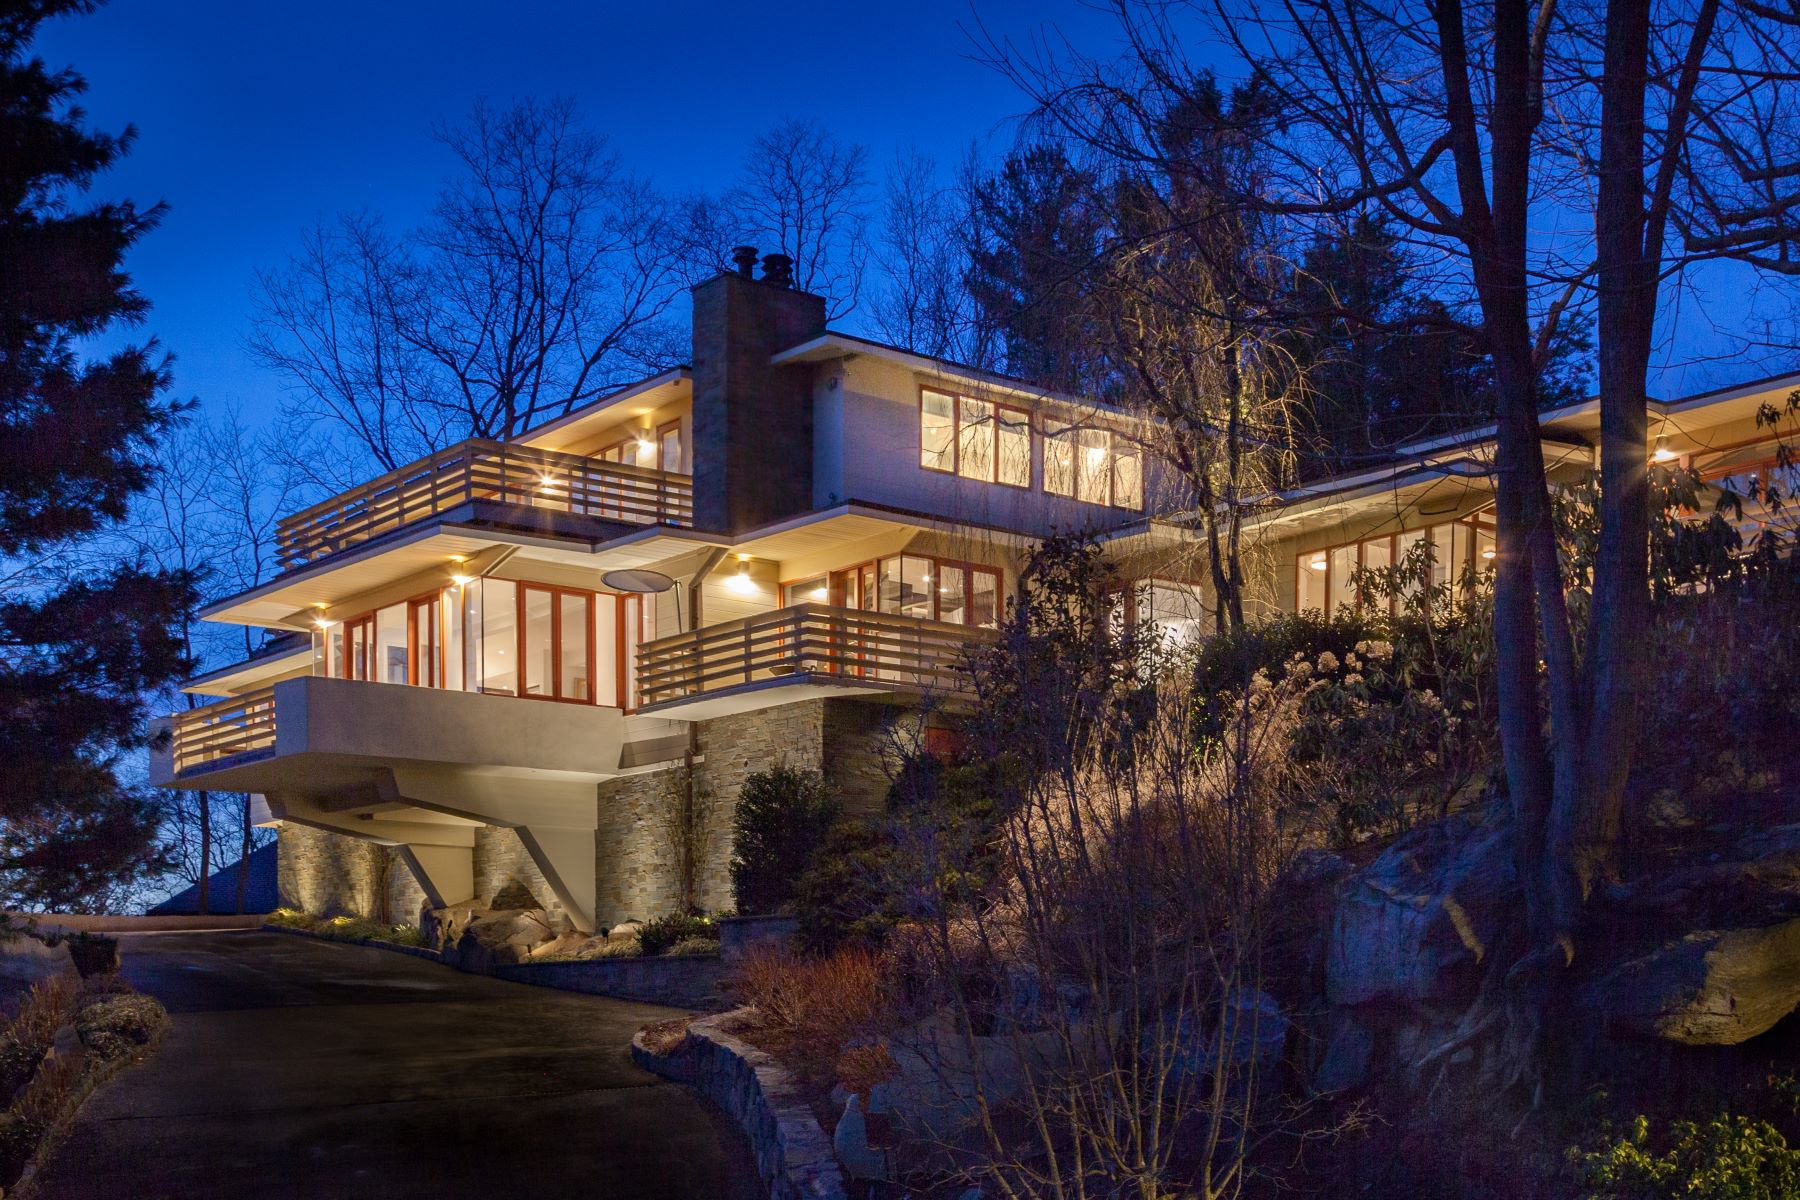 Single Family Homes for Active at Welcome To 1 Governors Road 1 Governors Road Bronxville, New York 10708 United States